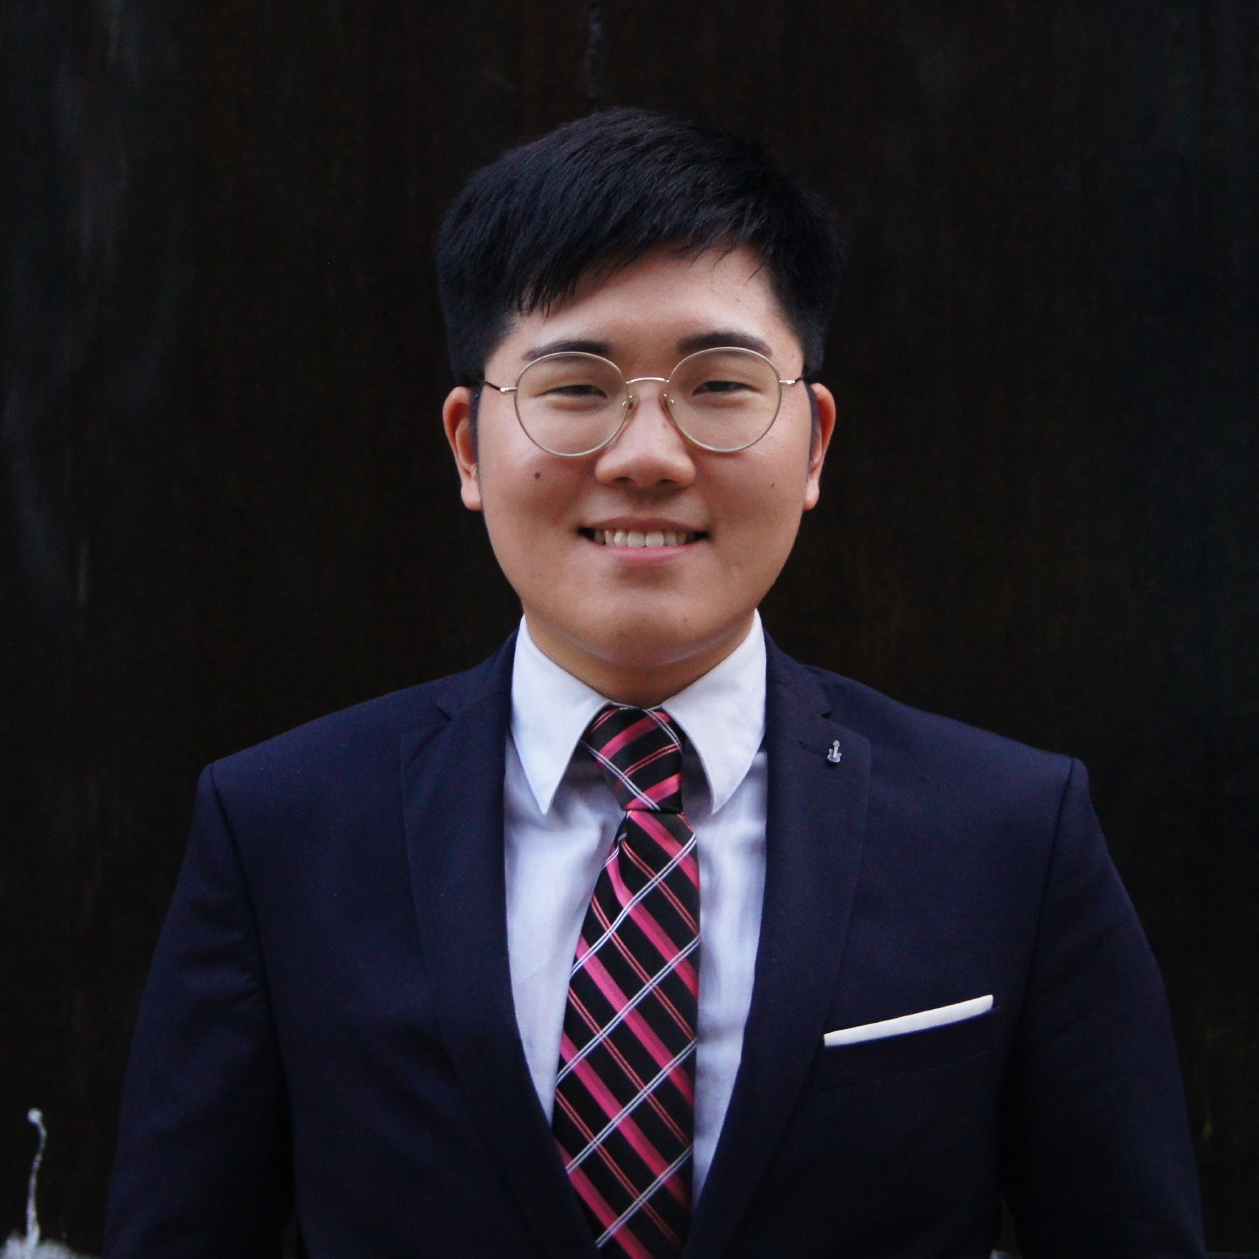 Sihyeon Kim - VP Internal    Contact Sihyeon   Sihyeon Kim is in his final year studying Computer Science with a minor in Linguistics. Originally from South Korea, he moved to the U.S. to finish his secondary education and then decided to pursue higher education in Canada. He loves to cook, argue over politics, and learn odds and ends. This year, as the VP Internal, he is responsible for the organization of academic and social activities for the members of the CSUS. His goal is to offer more academic events involving interdisciplinary fields. He is always open to any insight or idea to contribute to the CSUS community. You may contact him at csus-vpinternal@cs.mcgill.ca